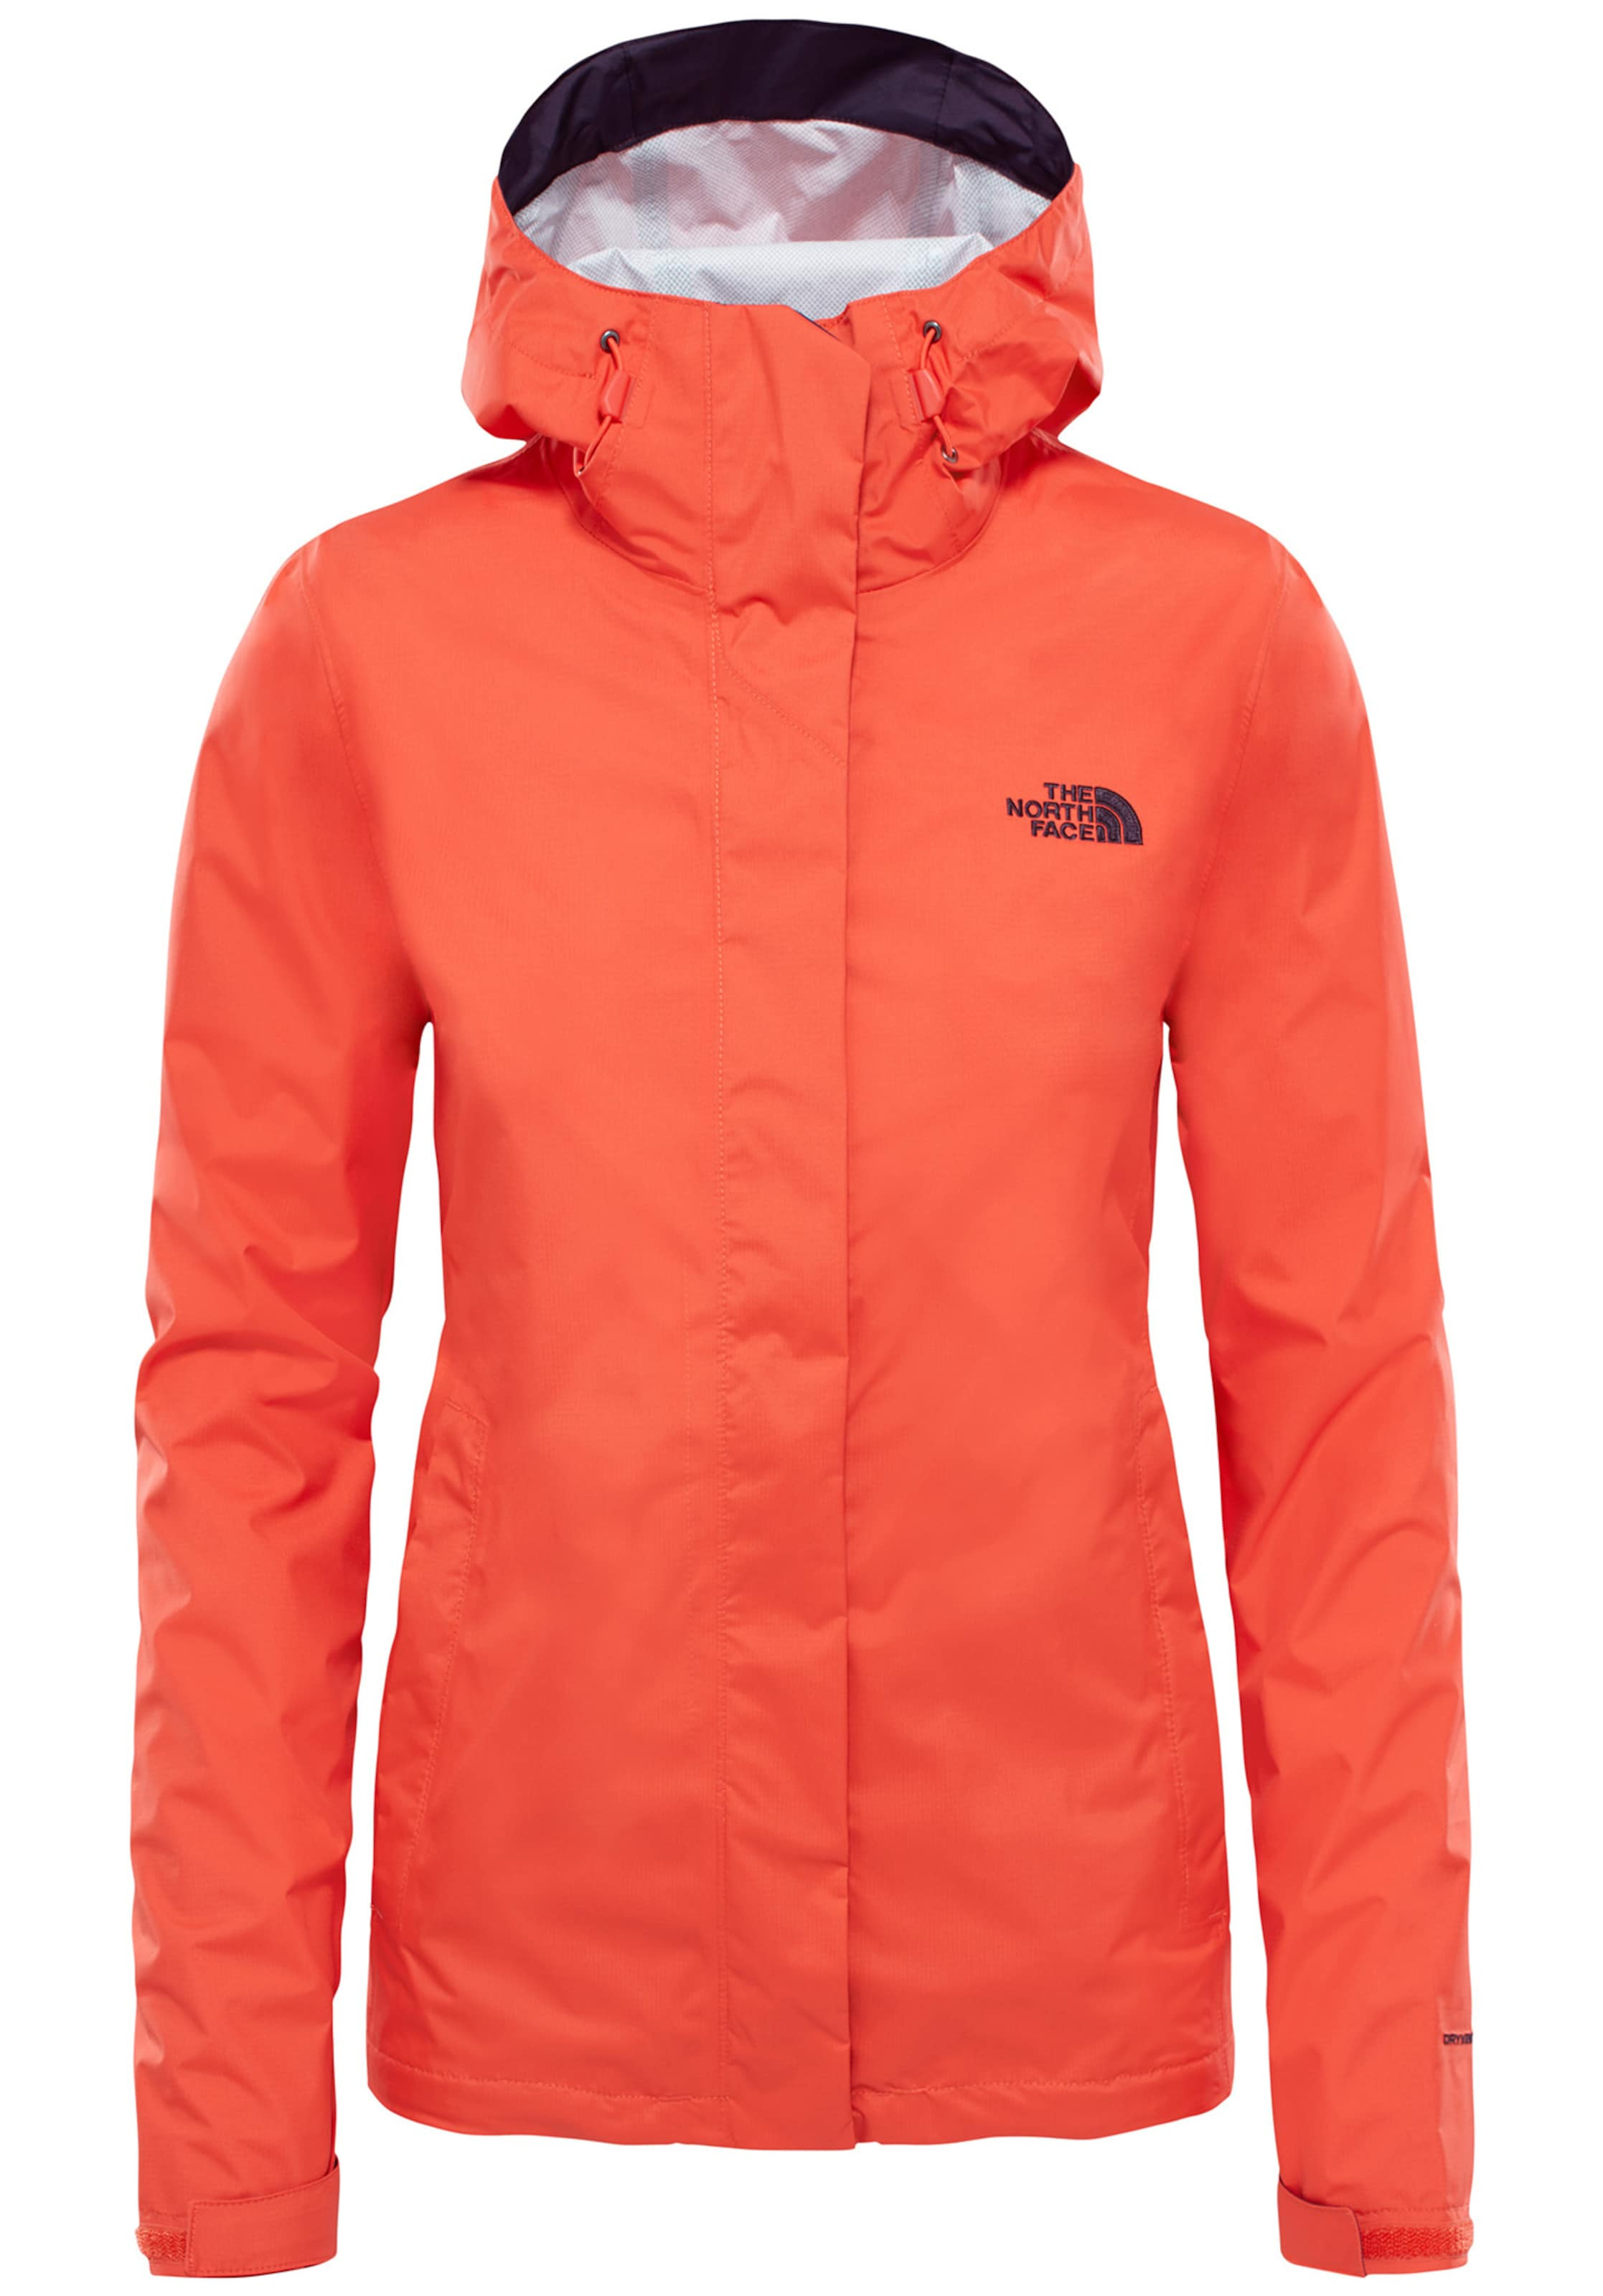 In Melone 'venture North Face The 2' Funktionsjacke CBxeod